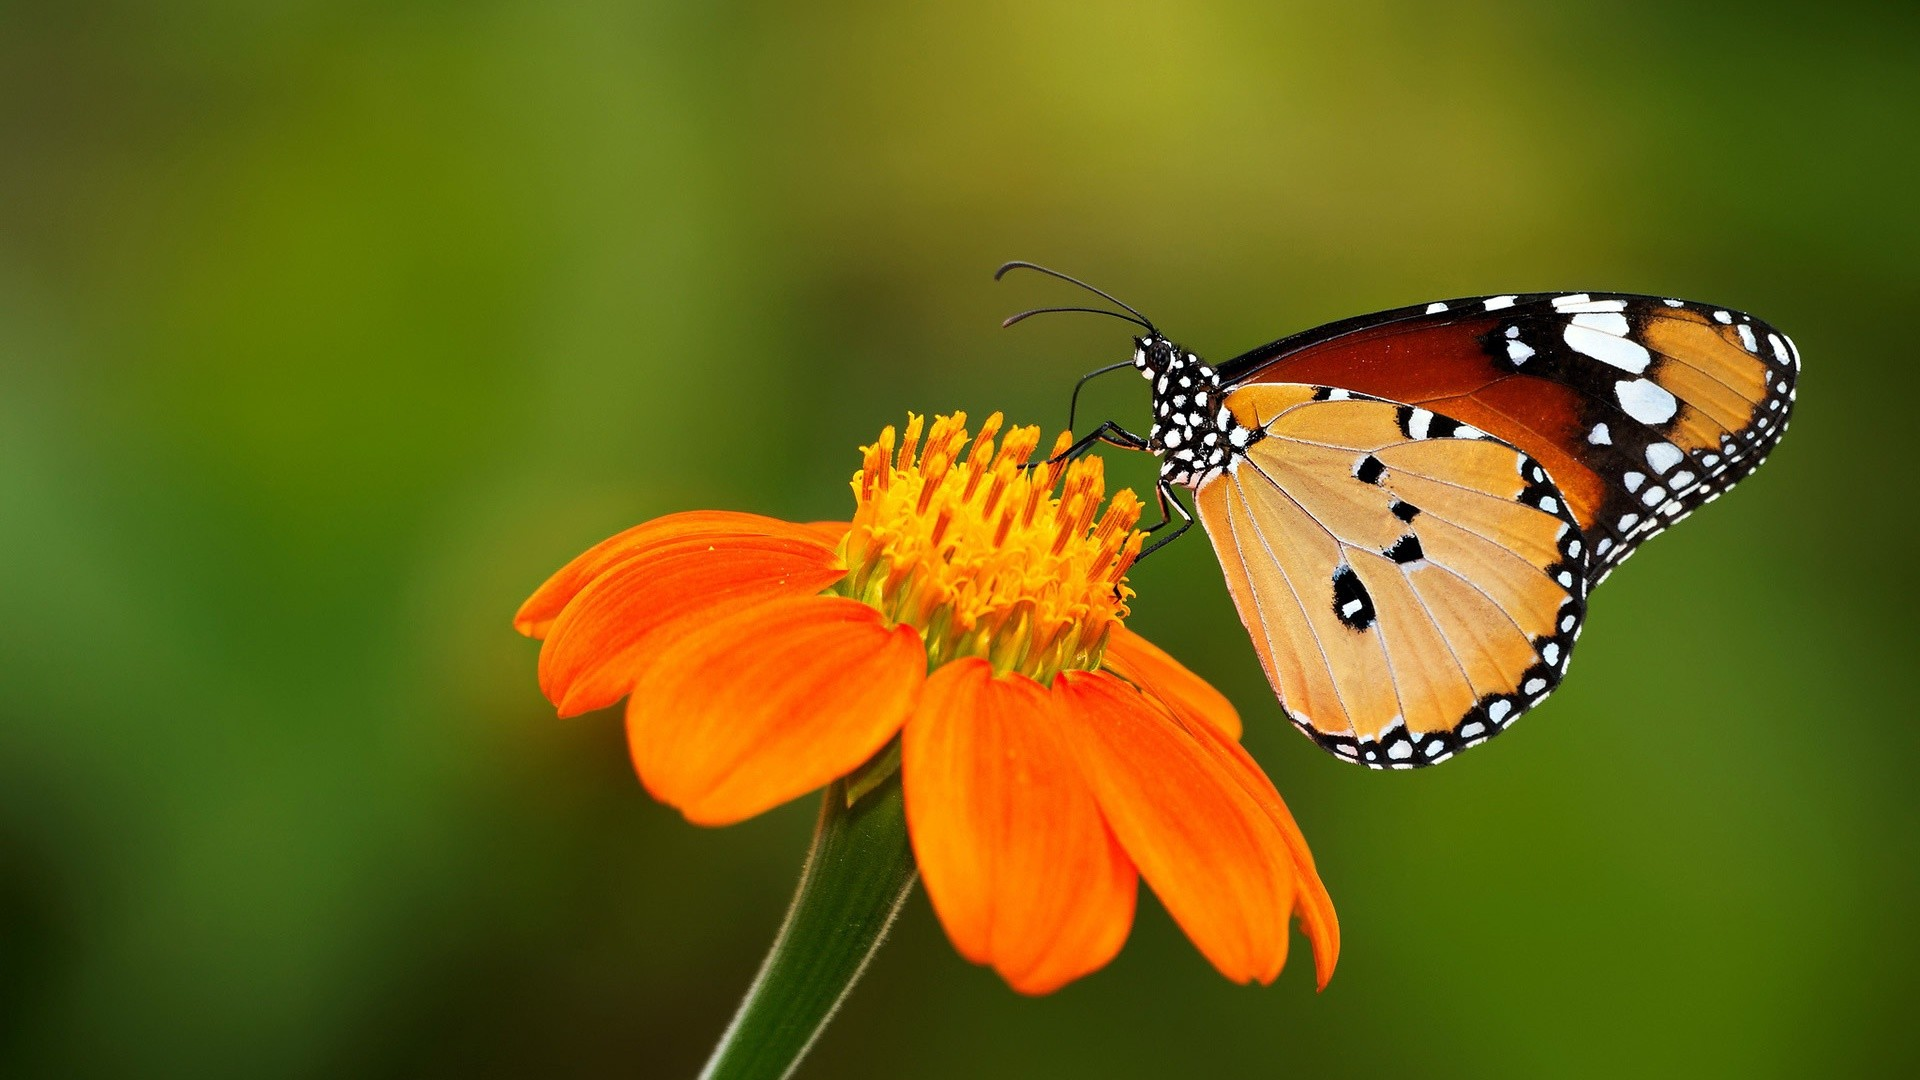 from flower and butterfly wallpaper wallpaper flower and butterfly 1920x1080